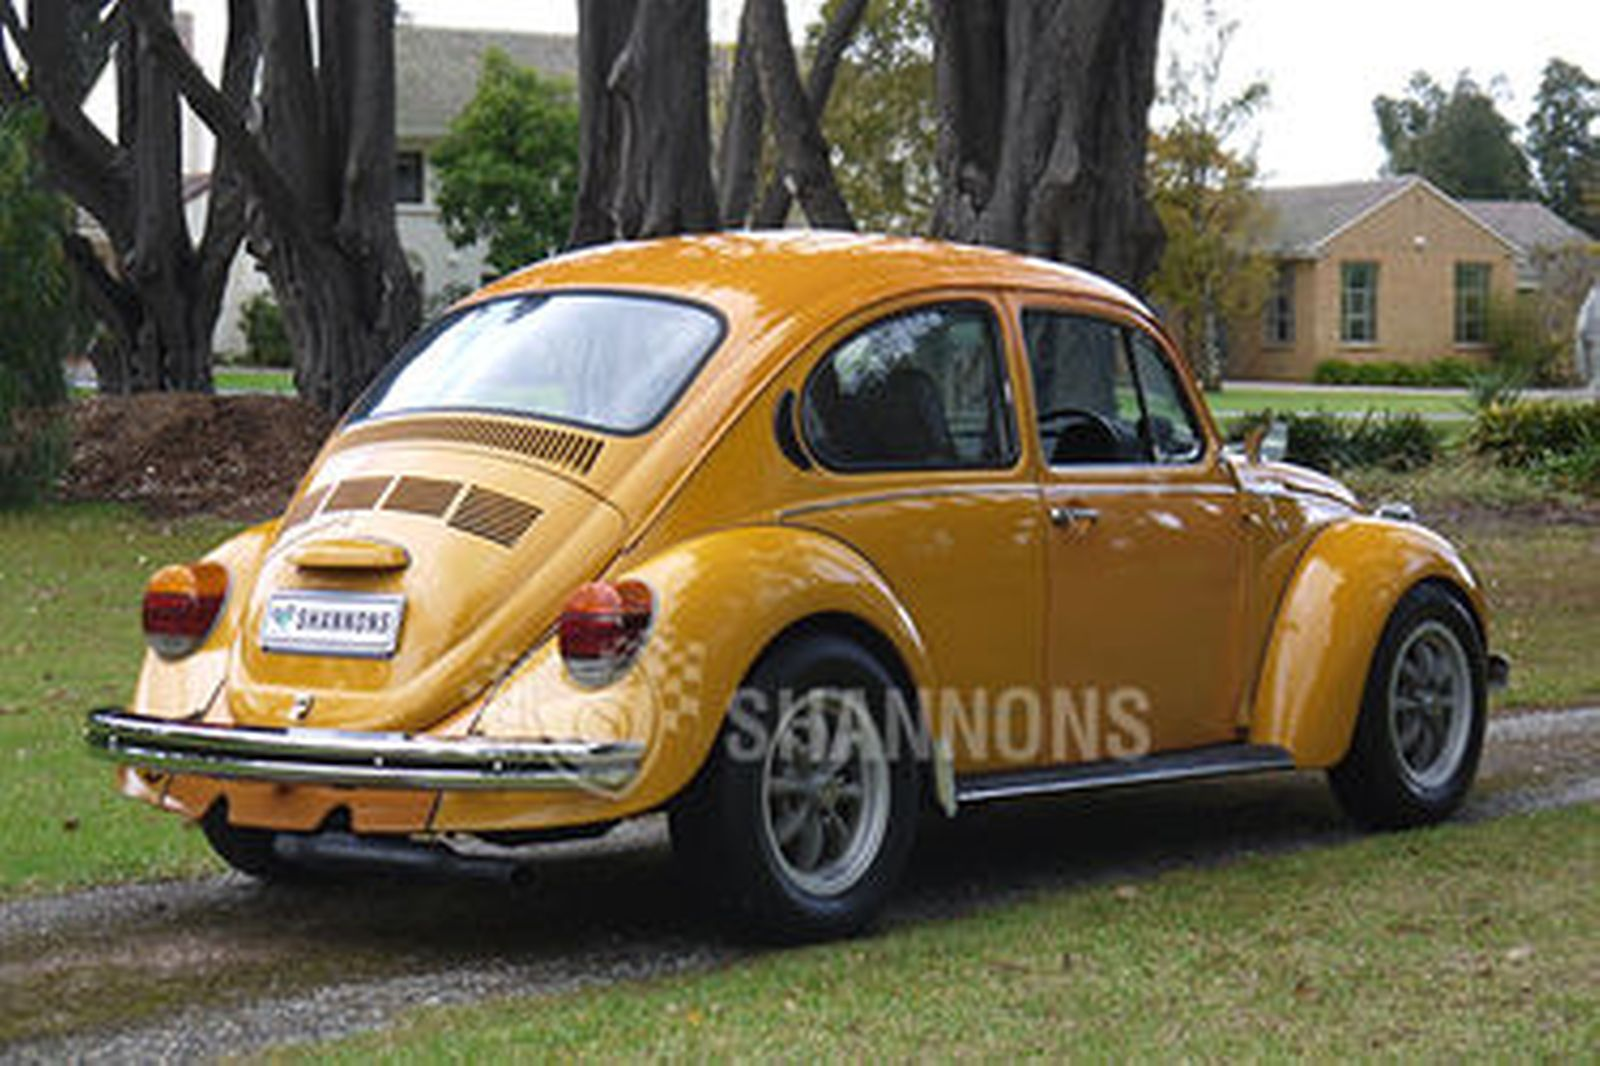 Sold: Volkswagen Beetle Superbug L Sedan Auctions - Lot 1 - Shannons